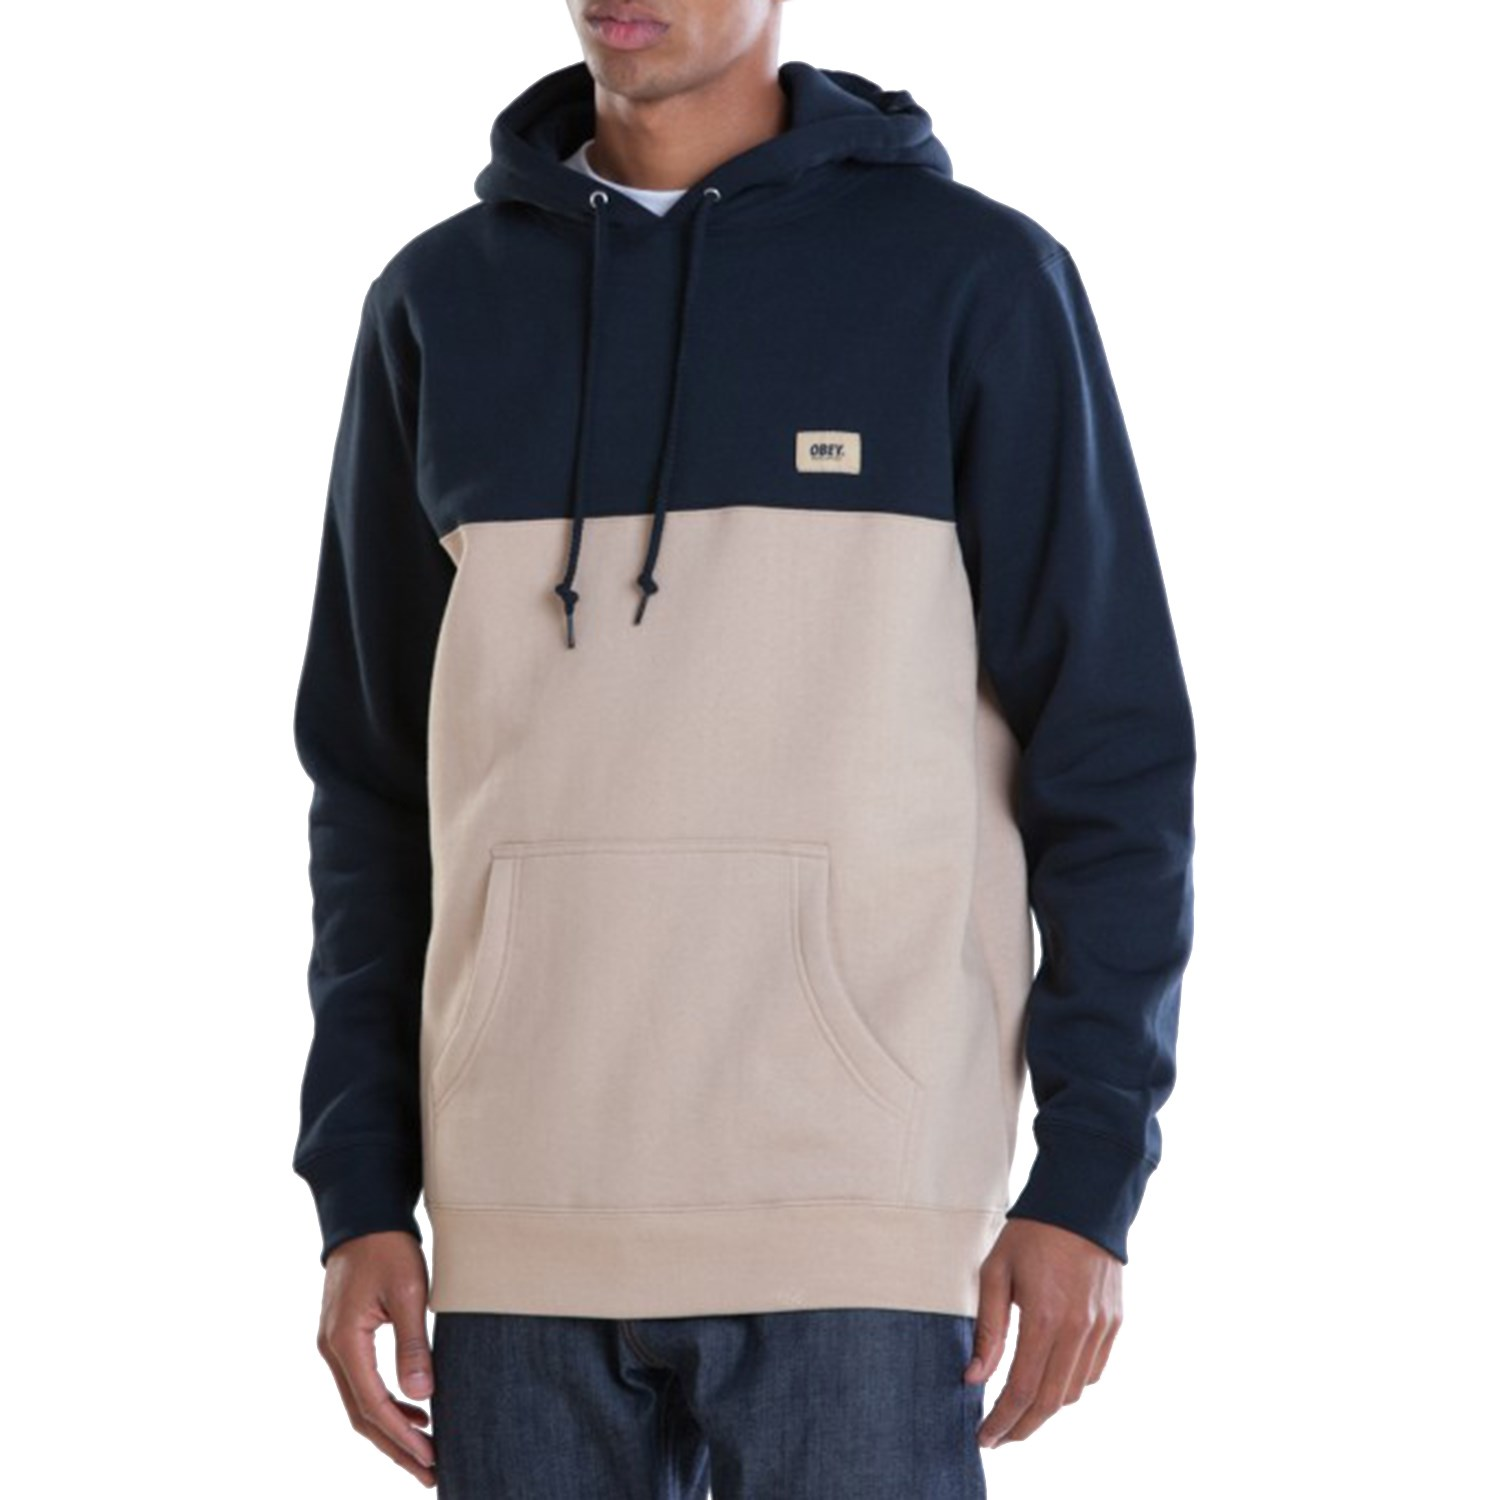 Obey Clothing West Pullover Hoodie | evo